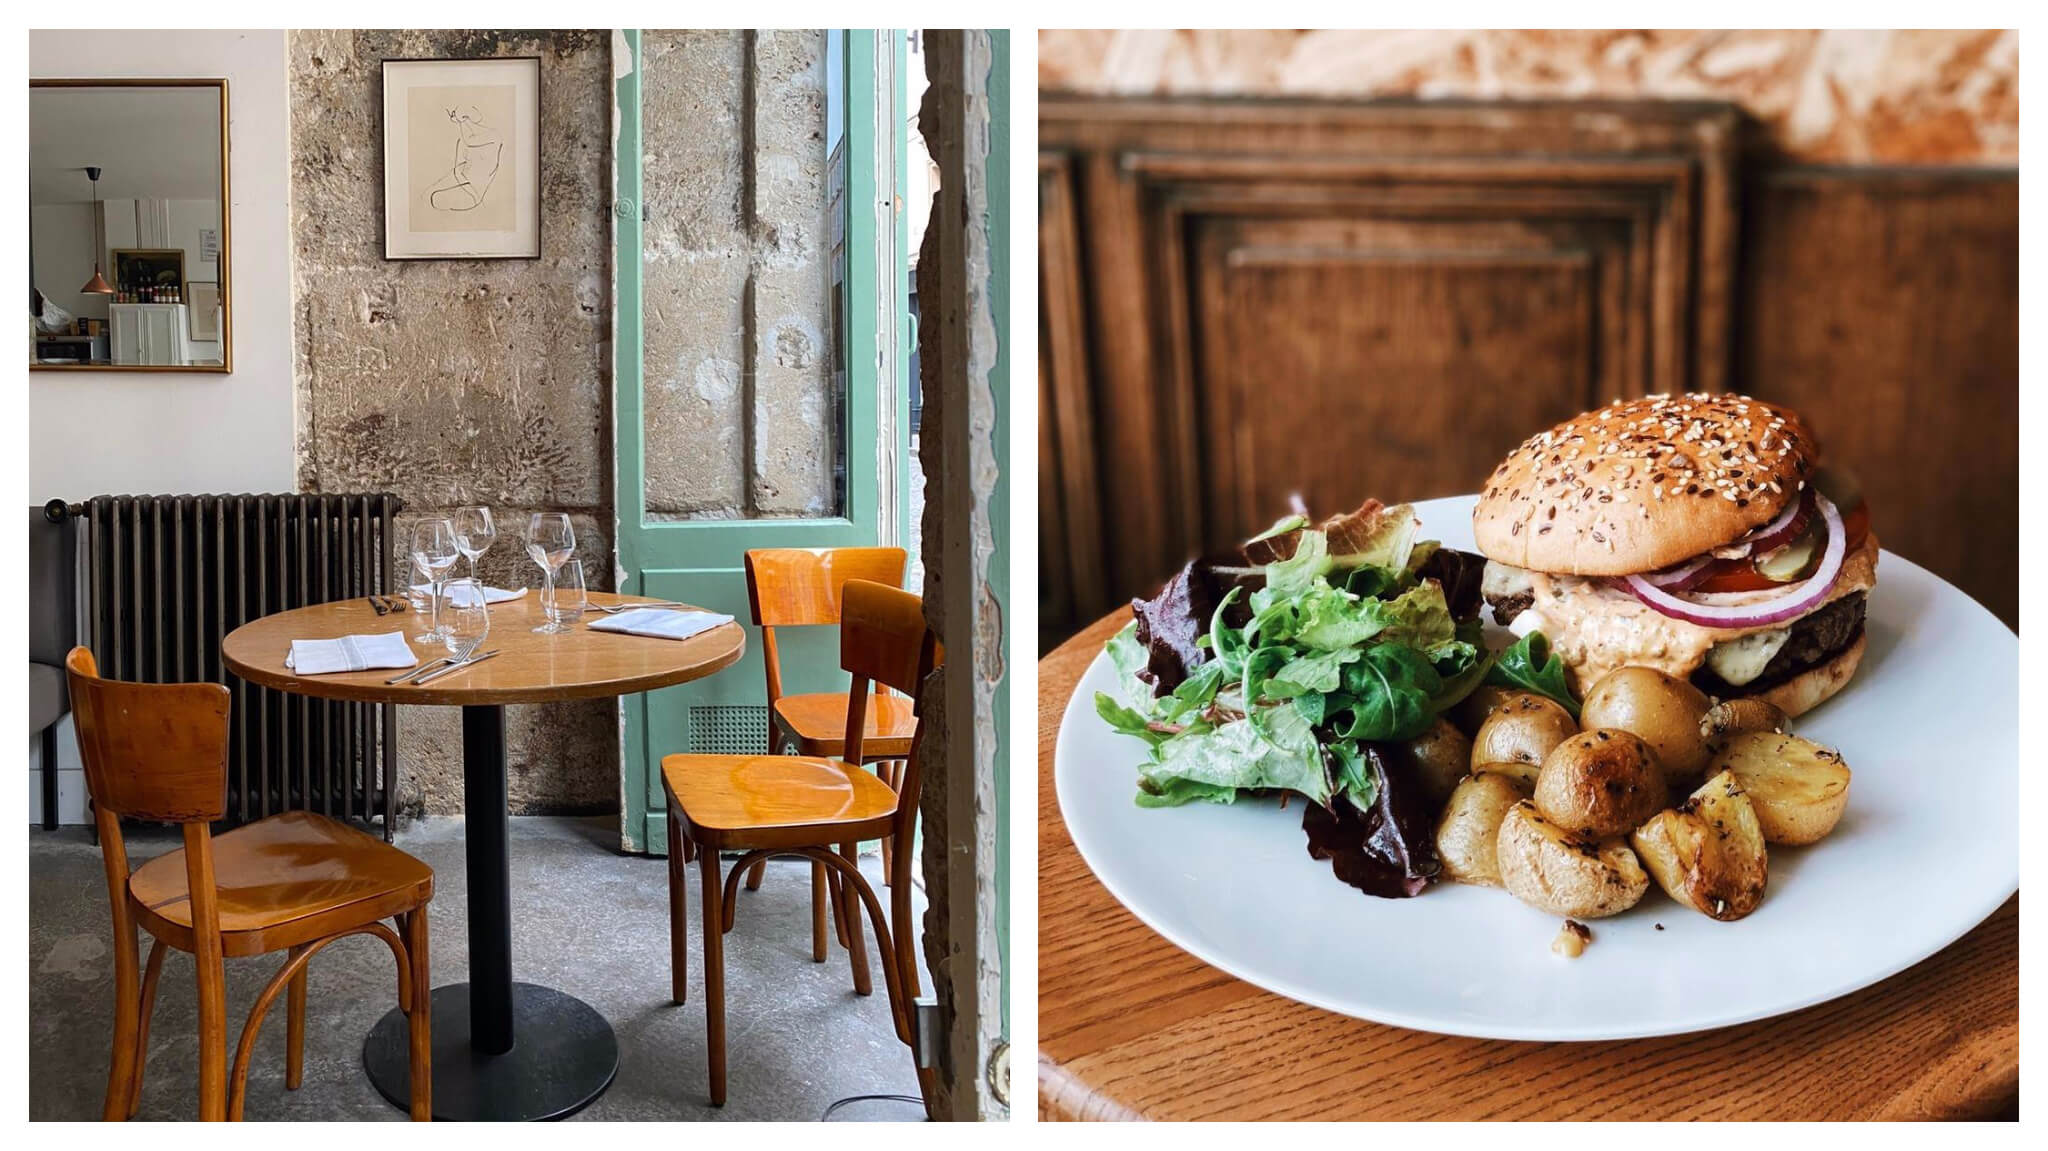 Left, a wooden table and chairs at a shabby chic style bistro in Paris. Right, an artisan cheese burger and fried potatoes on a white plate.